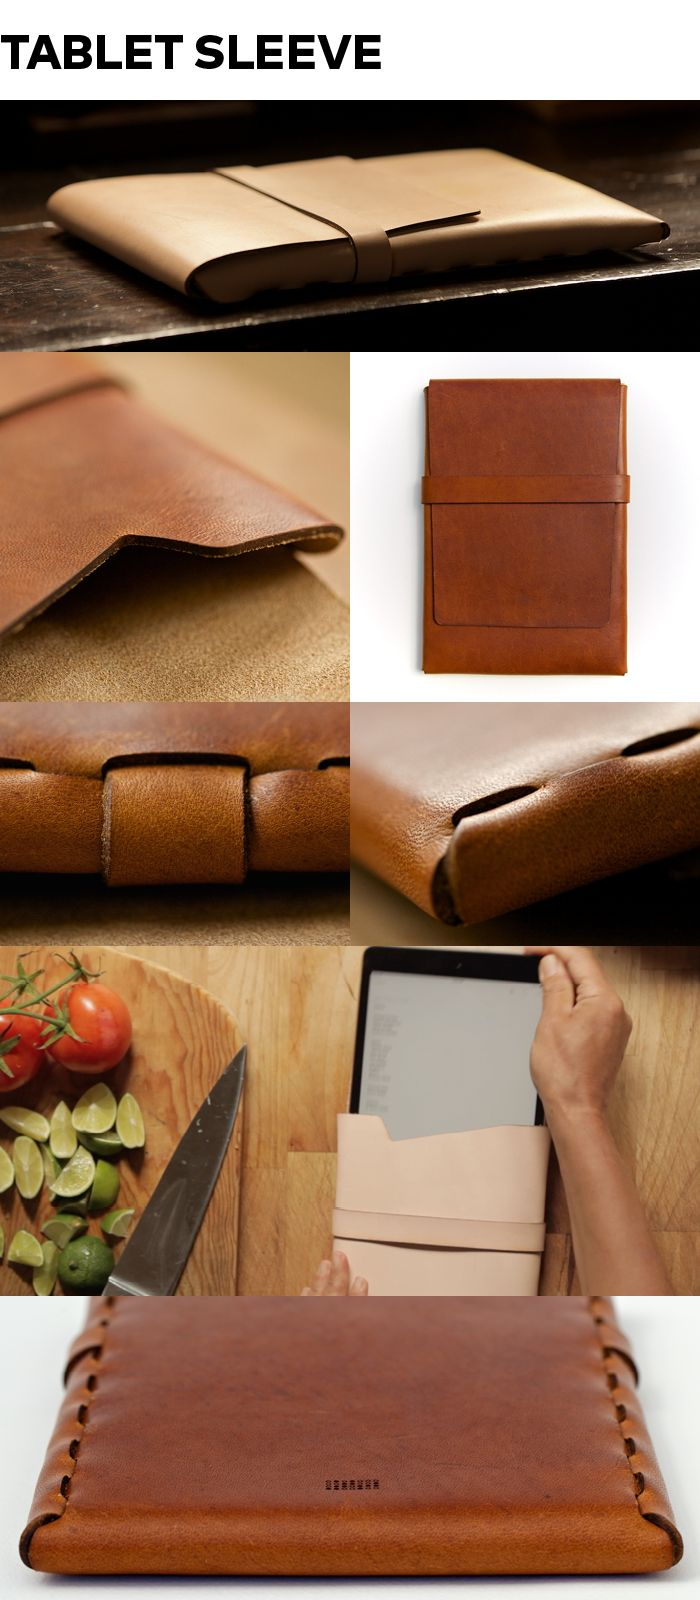 PACT Tablet Sleeve - An elegant leather sleeve for your tablet. This precision-crafted case eschews stitching and glue entirely, and instead utilizes our unique tabbed seam construction to create a form-fitted envelope out of a single piece of leather. The front flap can be conveniently rolled and placed under the tablet as an angled rest.